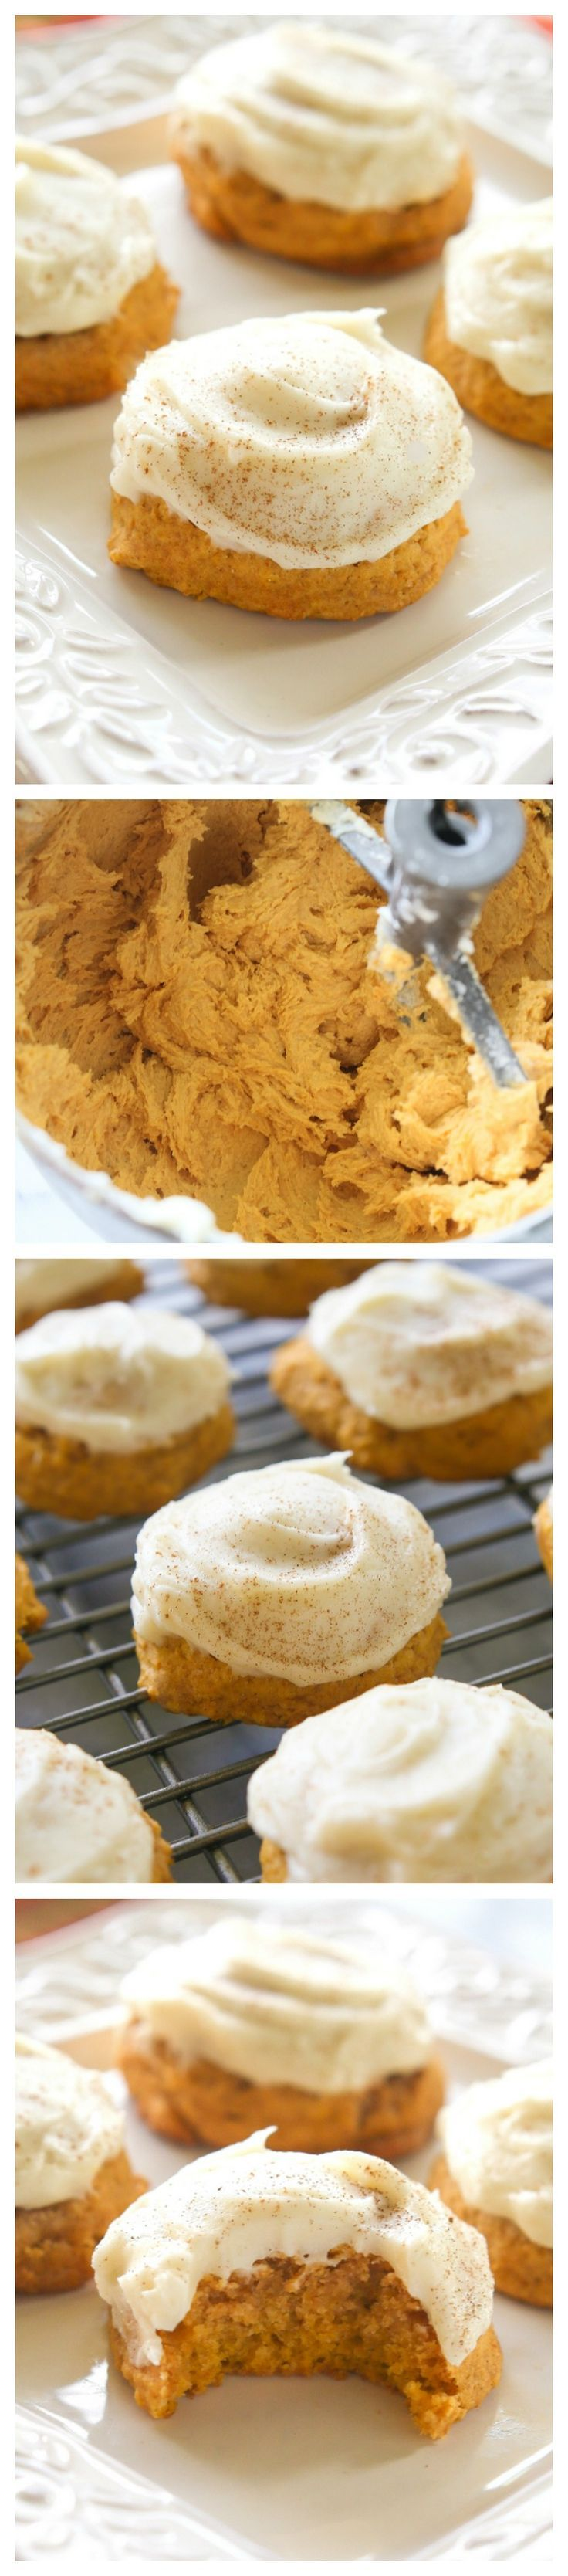 Pumpkin Cookies - melt in your mouth cookies with cream cheese frosting #thanksgiving #cookies #pumpkin